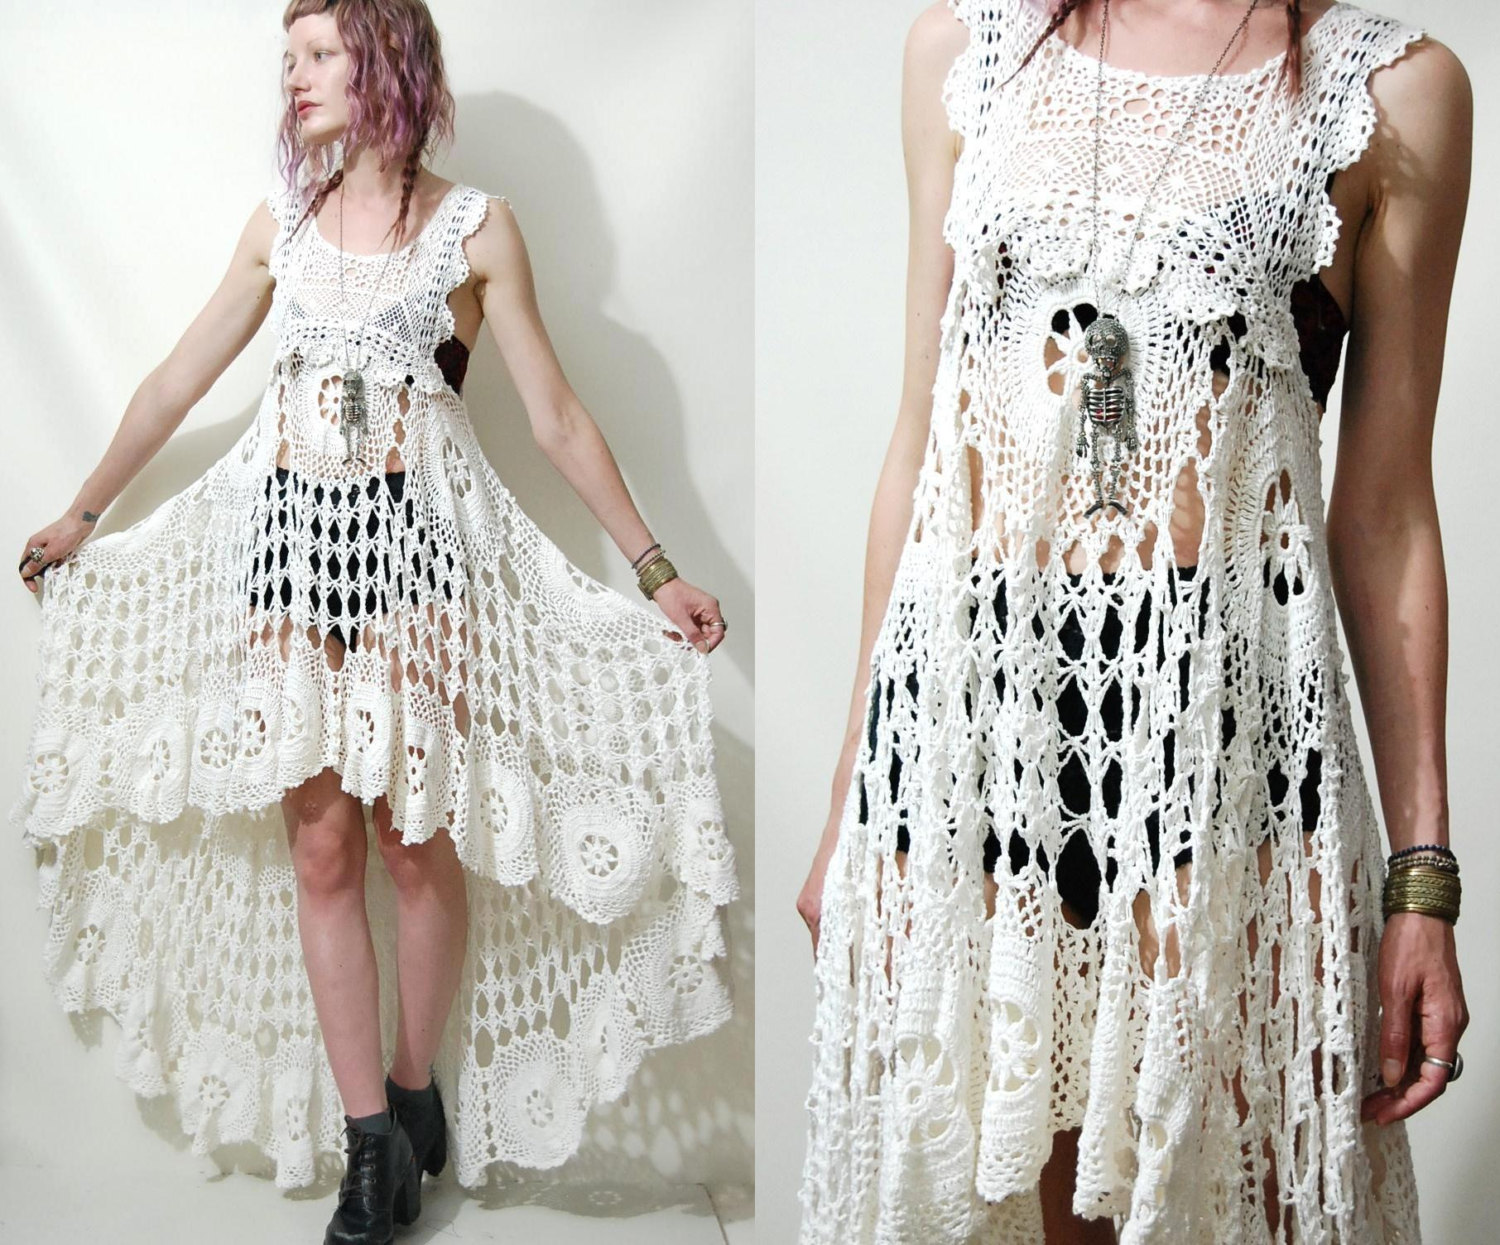 Crocheting Clothes : Knot-Cha-Ch?!?: Cool Finds: Crochet Dresses